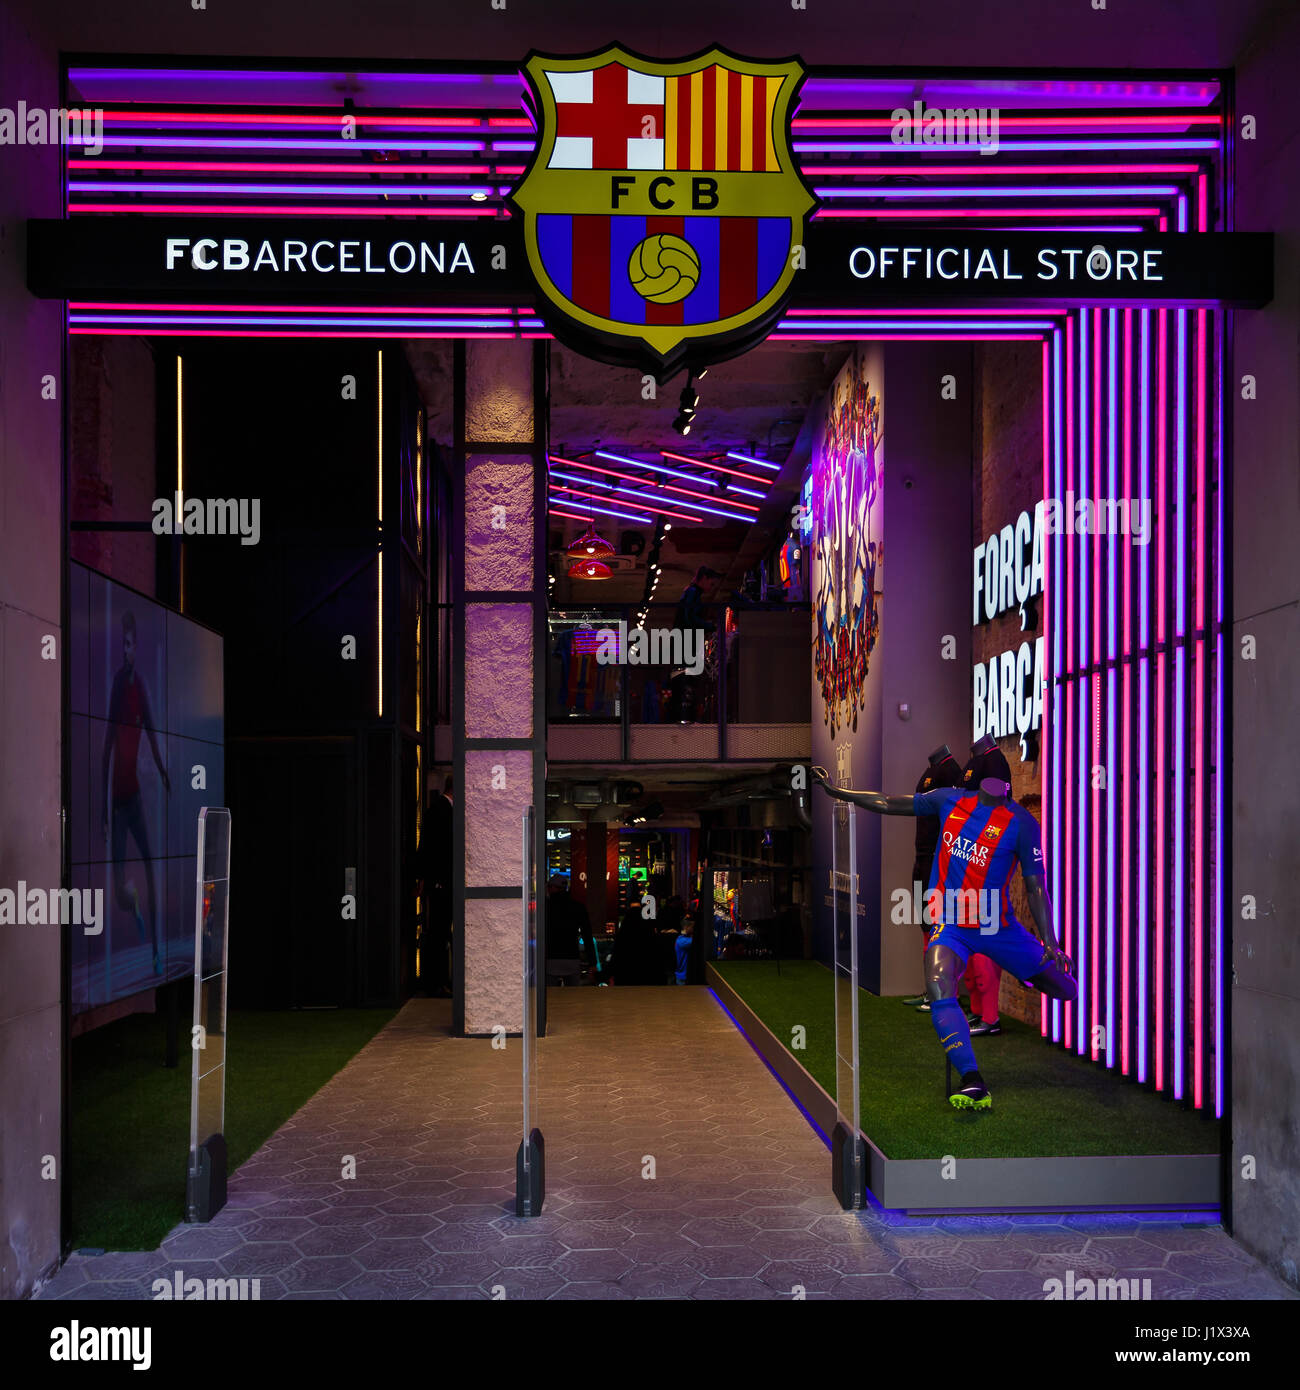 Barcelona, Spain - January 02 2017: Entrance to official store of football club Barcelona, located on the Passeig - Stock Image